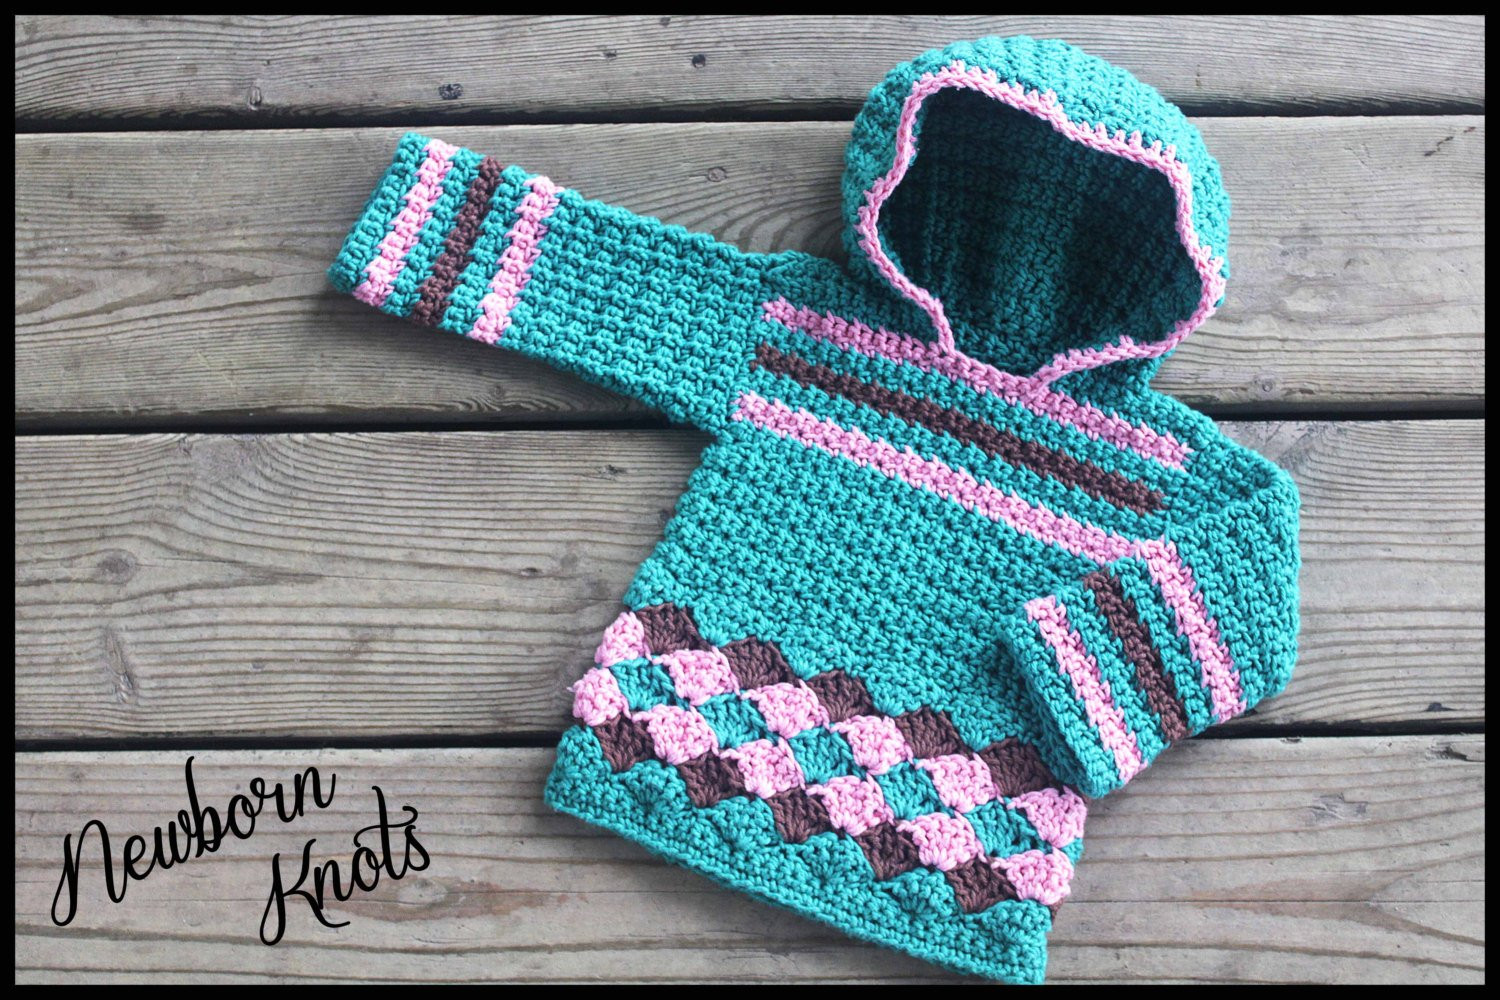 Baby Boy Crochet Patterns Unique Crochet Pattern for Baby Boy or Girls Pullover Hooded Sweater Of Awesome 41 Models Baby Boy Crochet Patterns